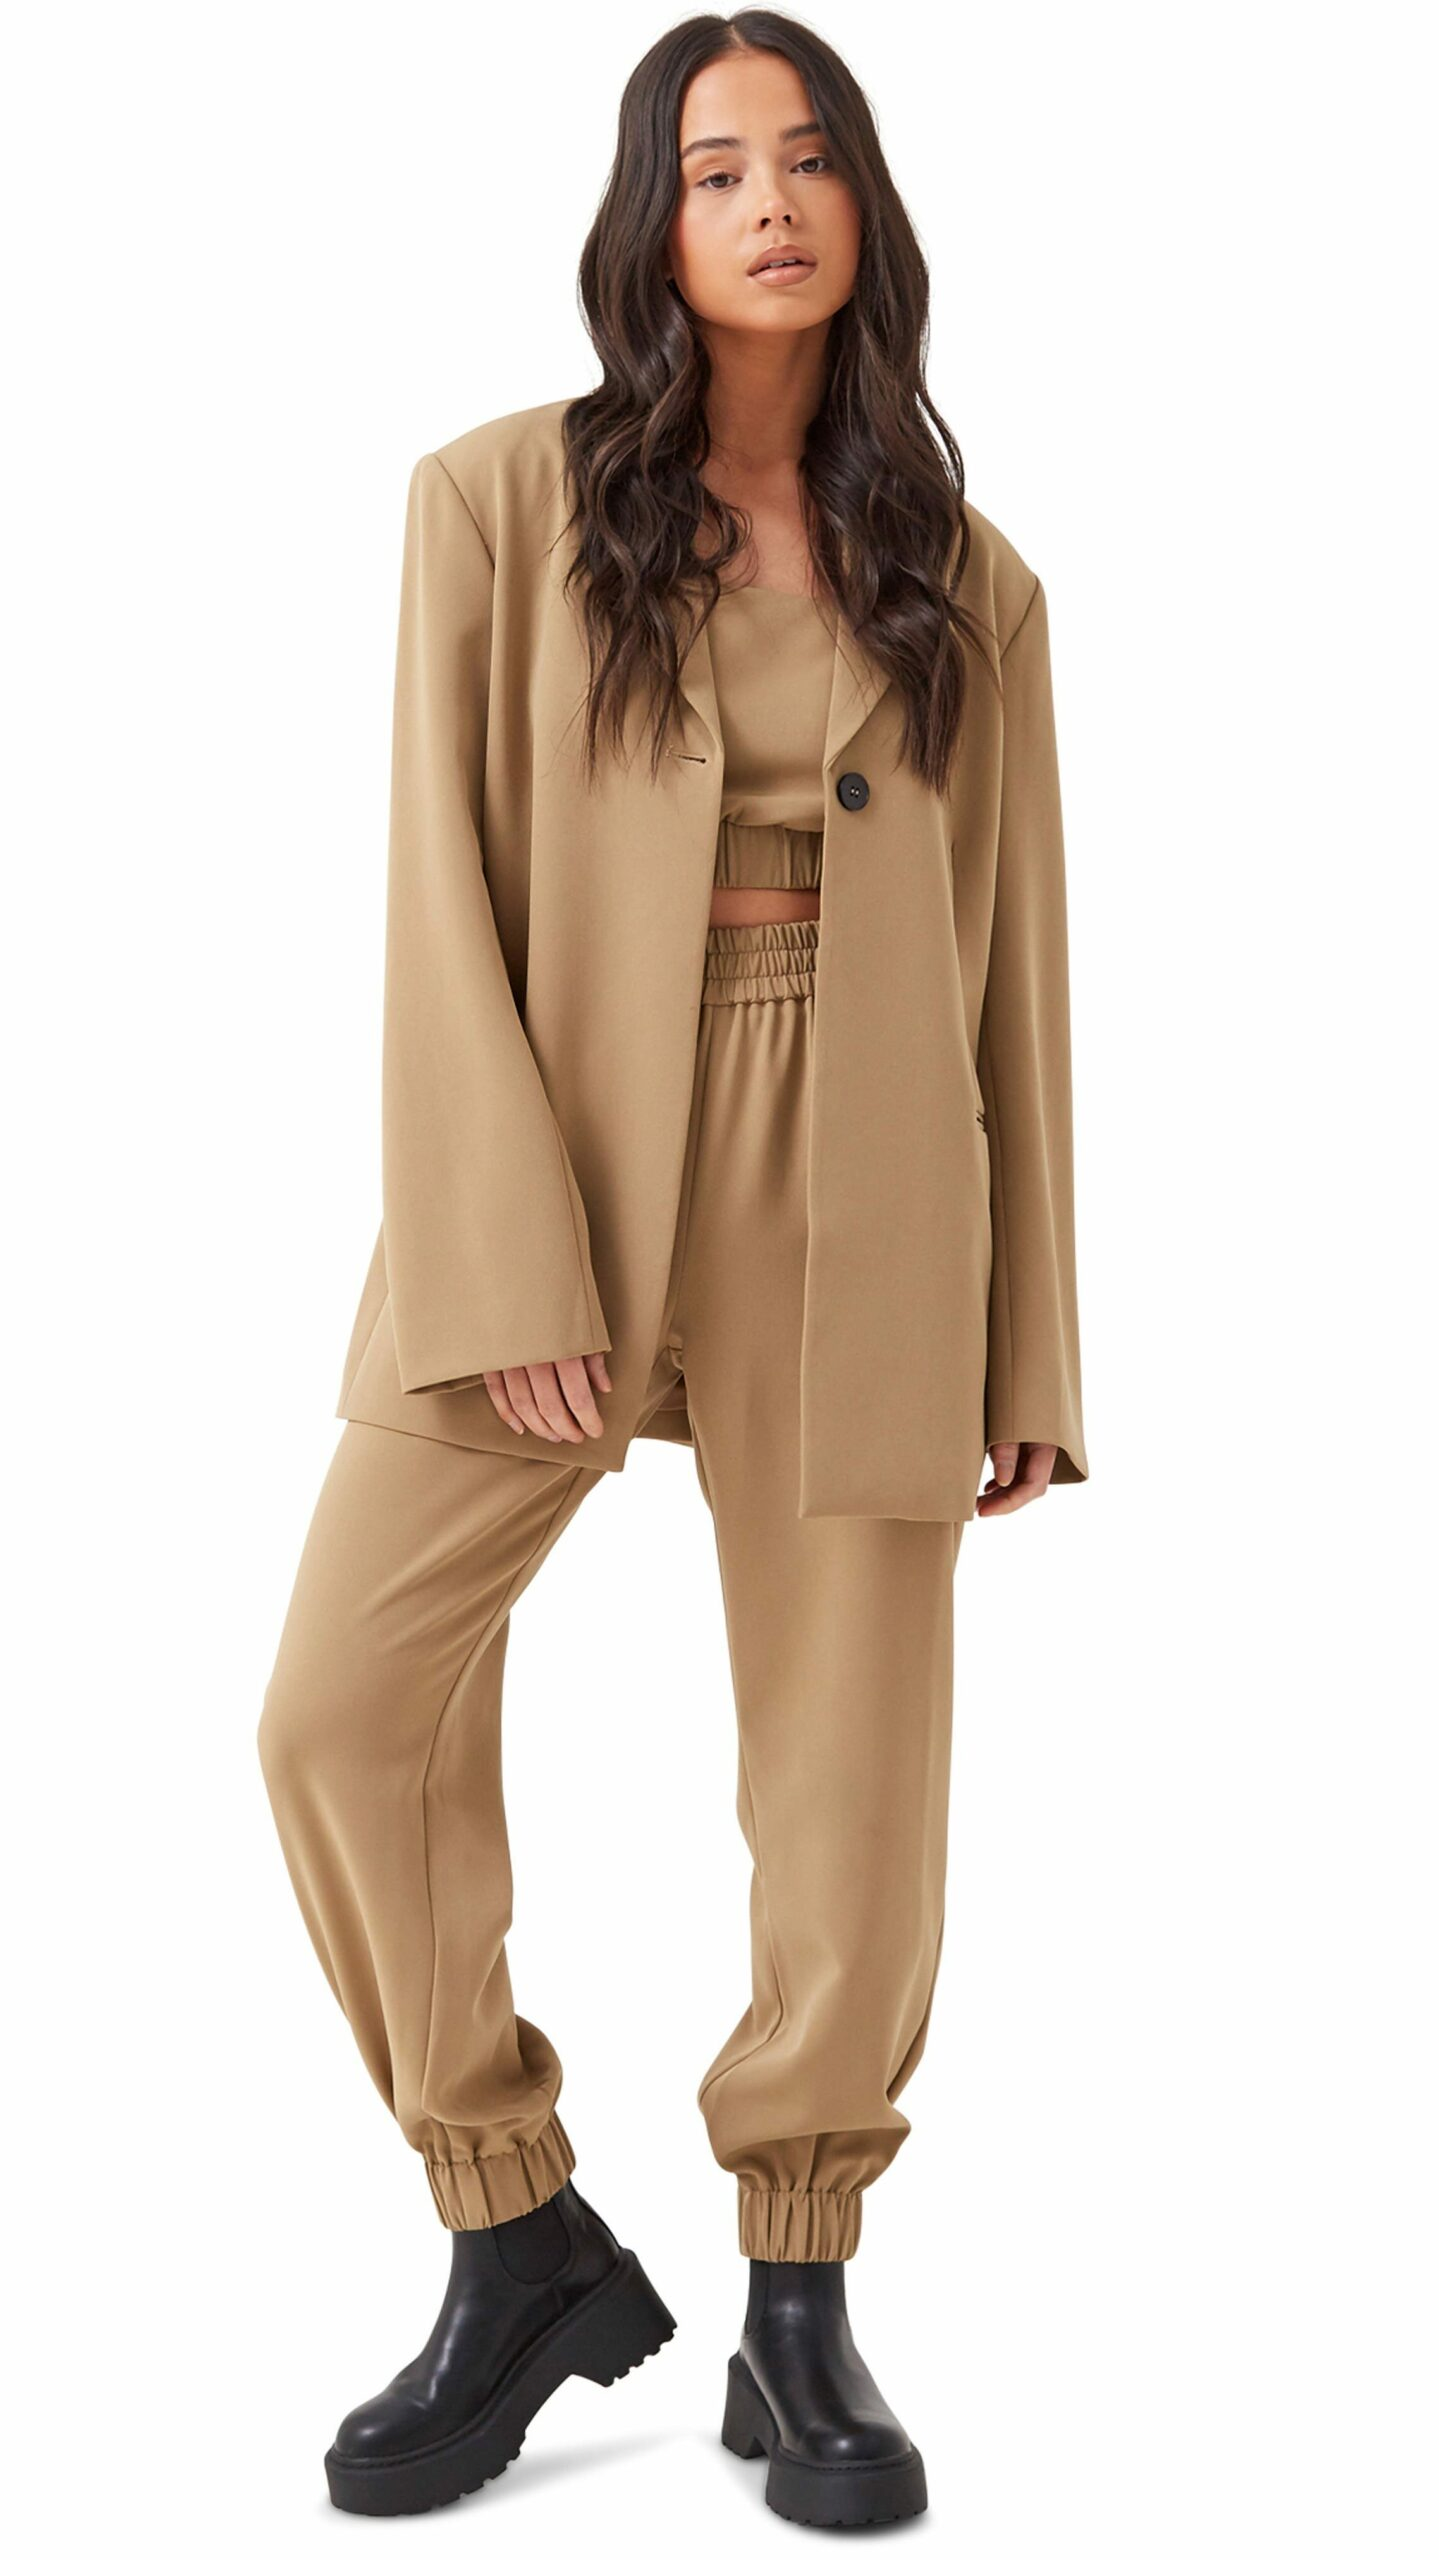 chic style clothing